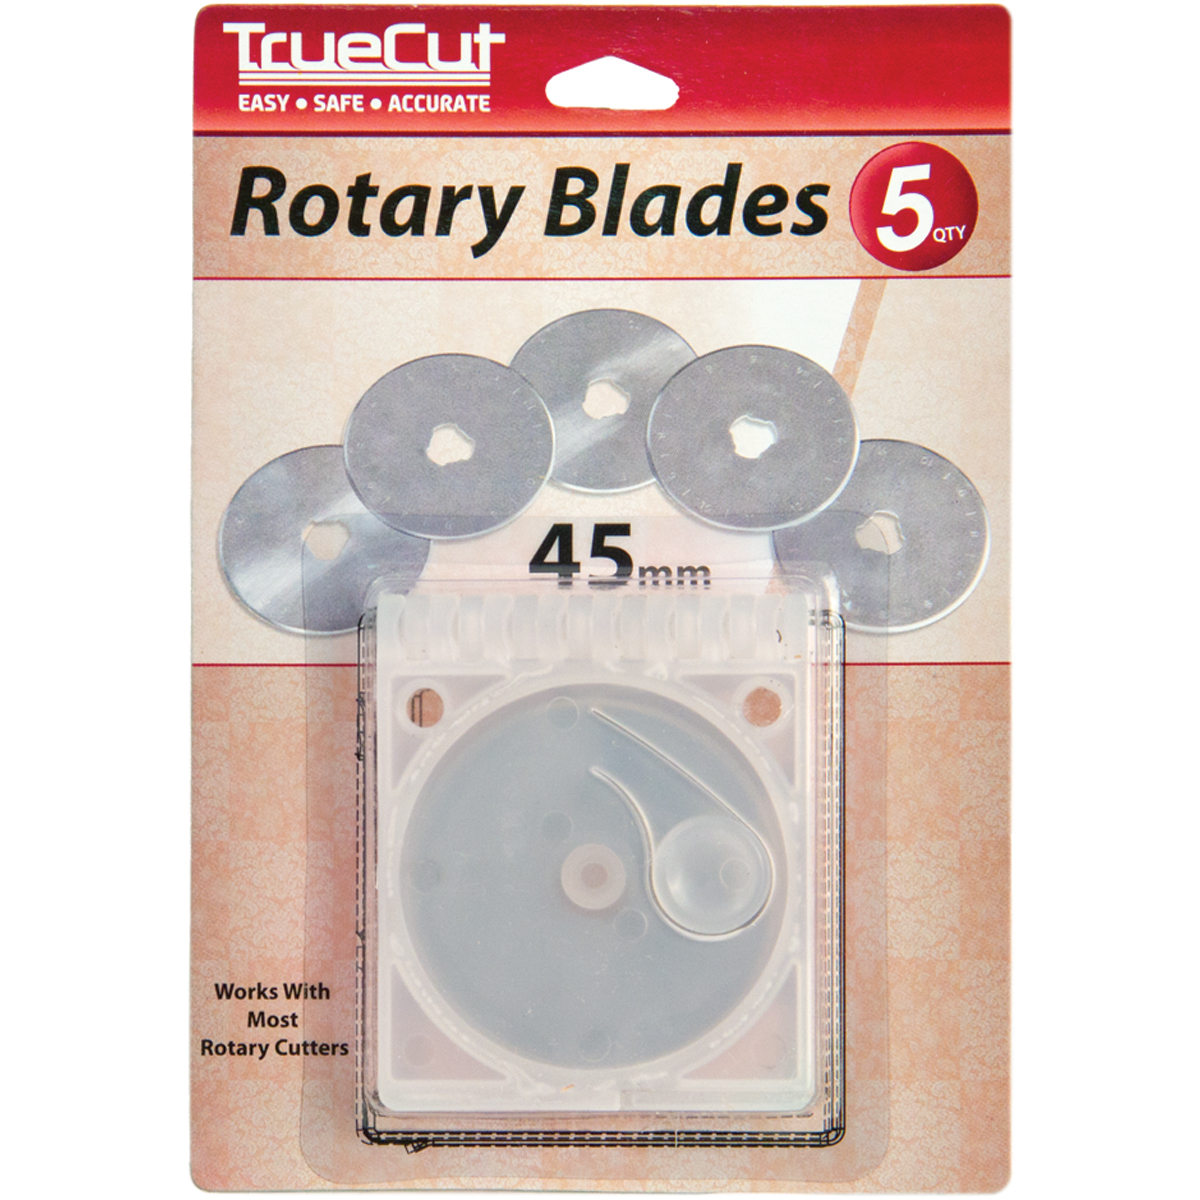 TrueCut Rotary Cutter Replacement Blades, 45mm, 5pk